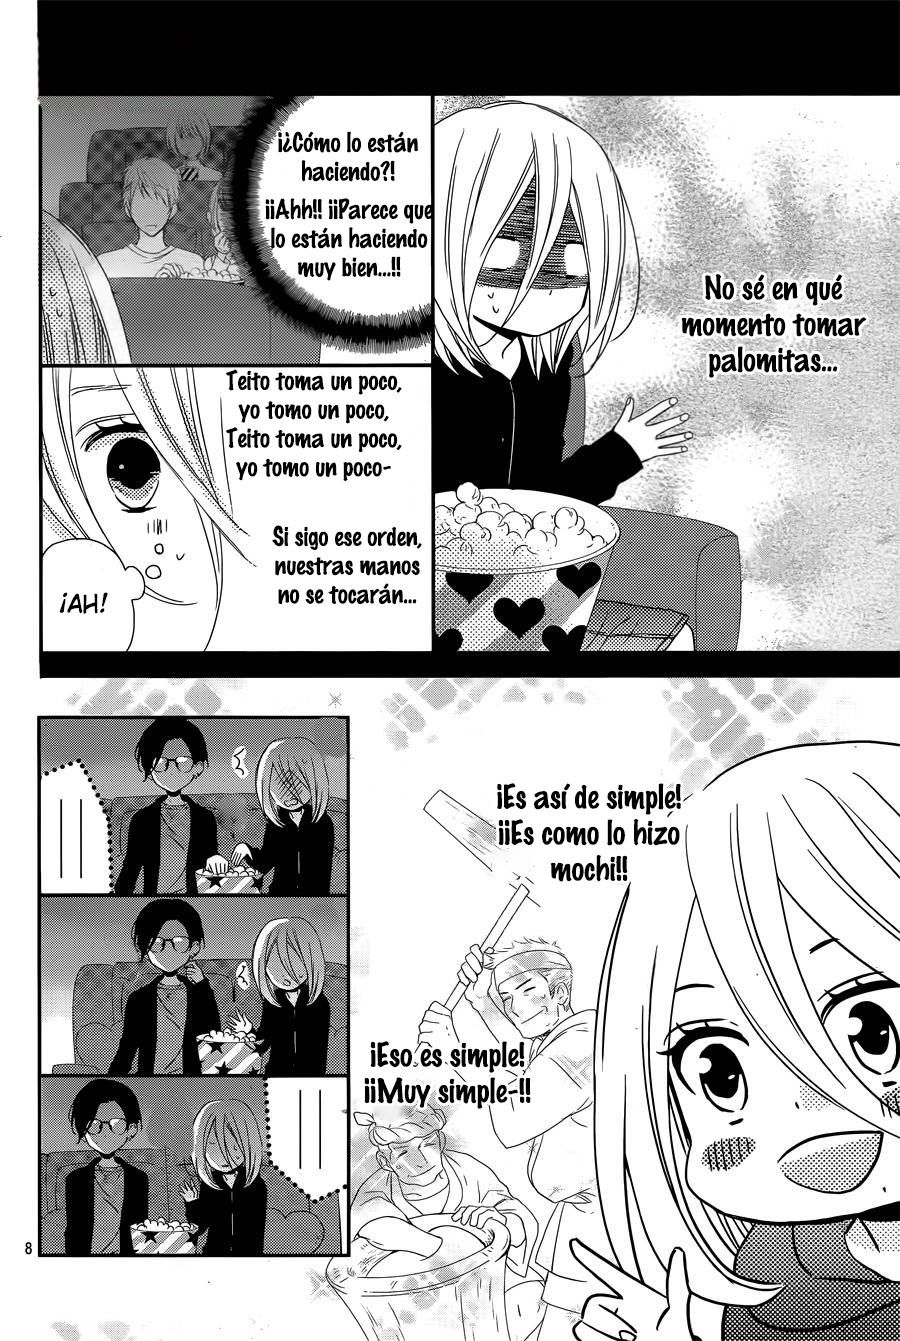 http://c5.ninemanga.com/es_manga/19/19347/473496/13d4bfa0321f86f042b34ec79064b316.jpg Page 9